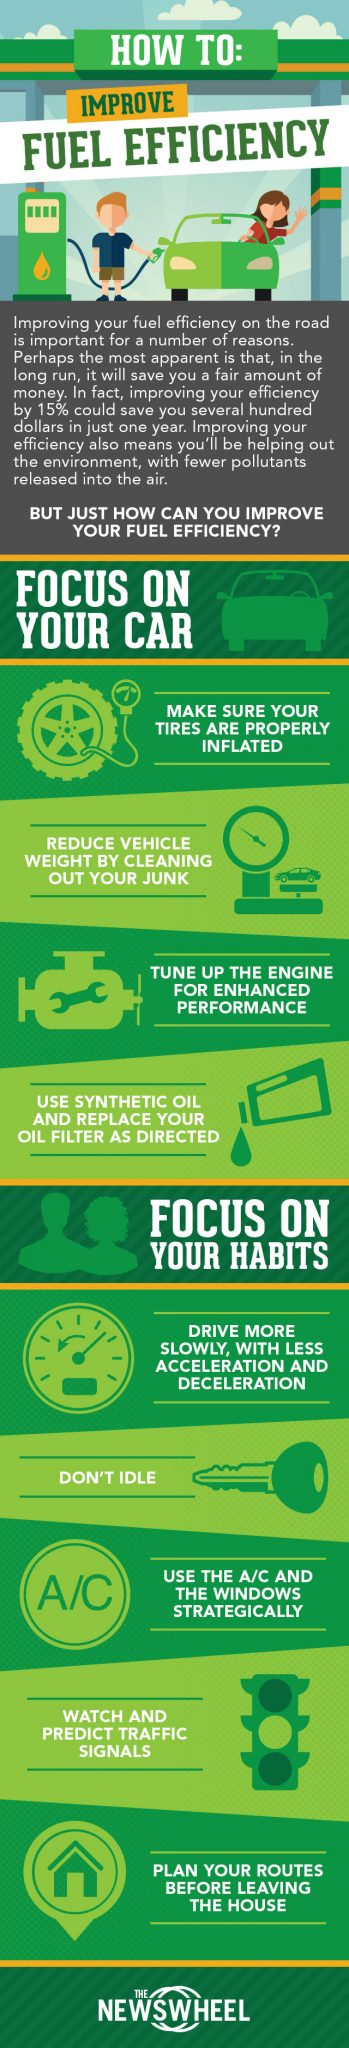 how to improve your fuel efficiency - fuel efficiency infographic